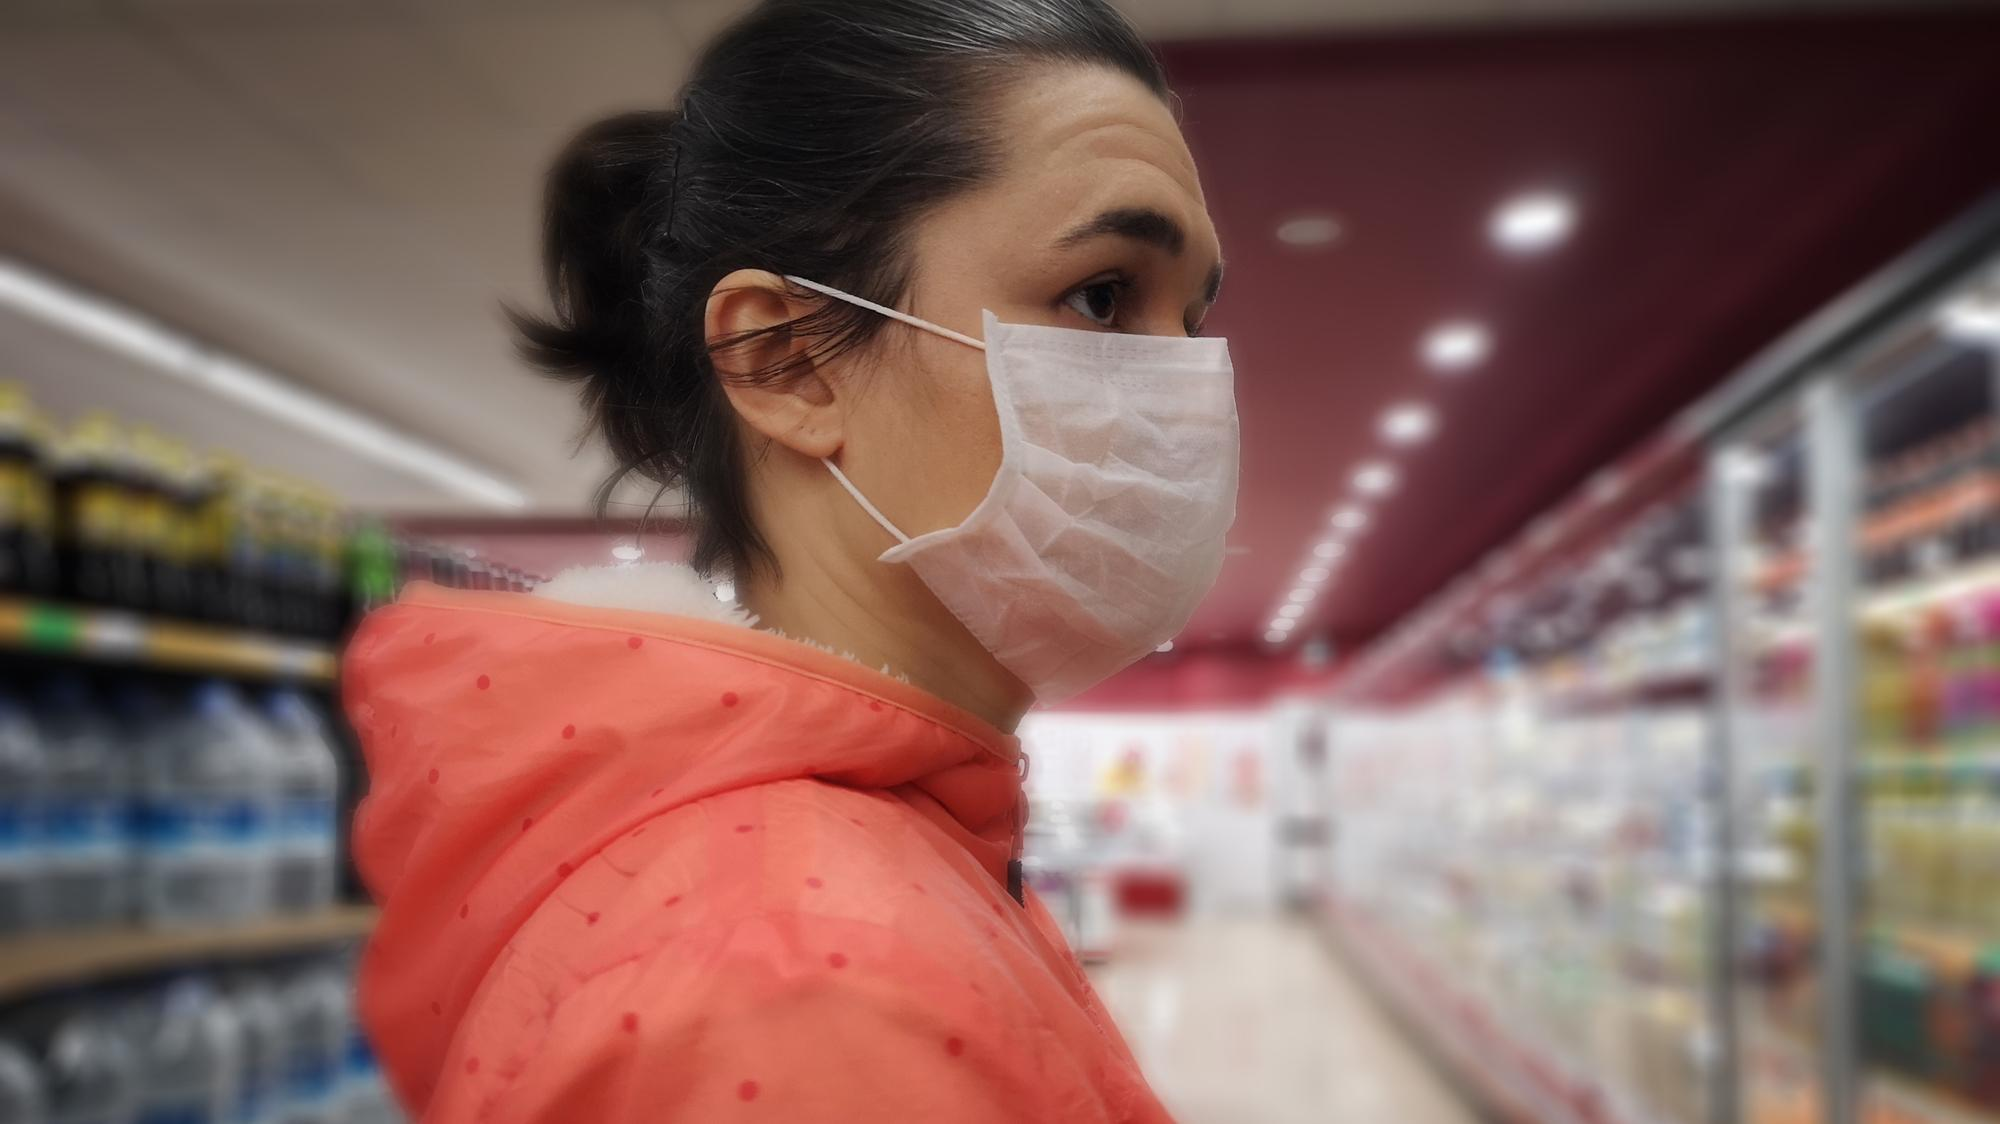 Young woman wears medical mask against virus while grocery shopping in supermarket,  health, safety and pandemic concept